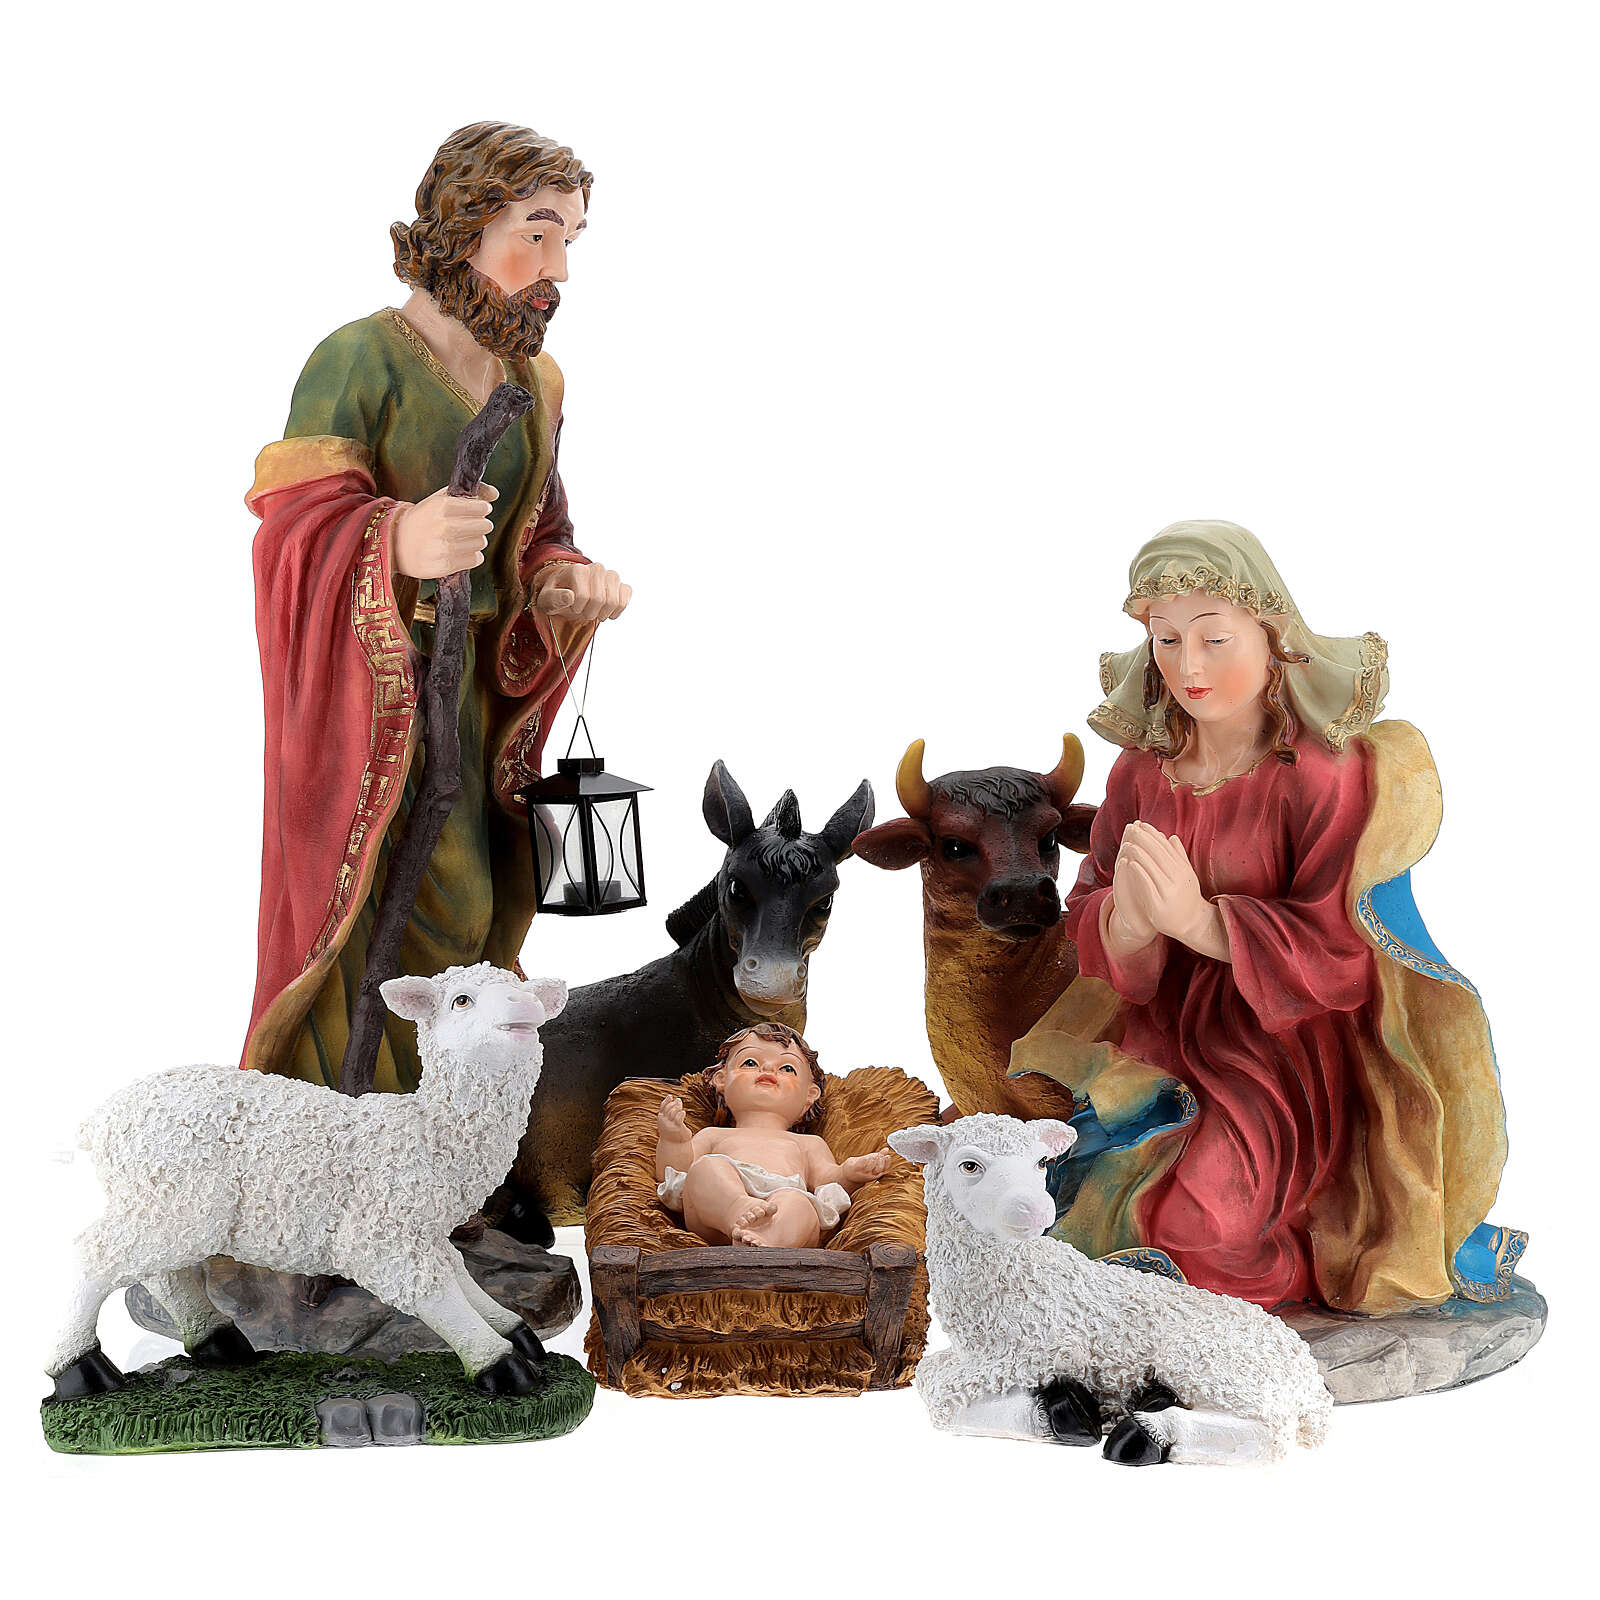 STOCK Nativity Scene painted resin with 90 cm figurines 4